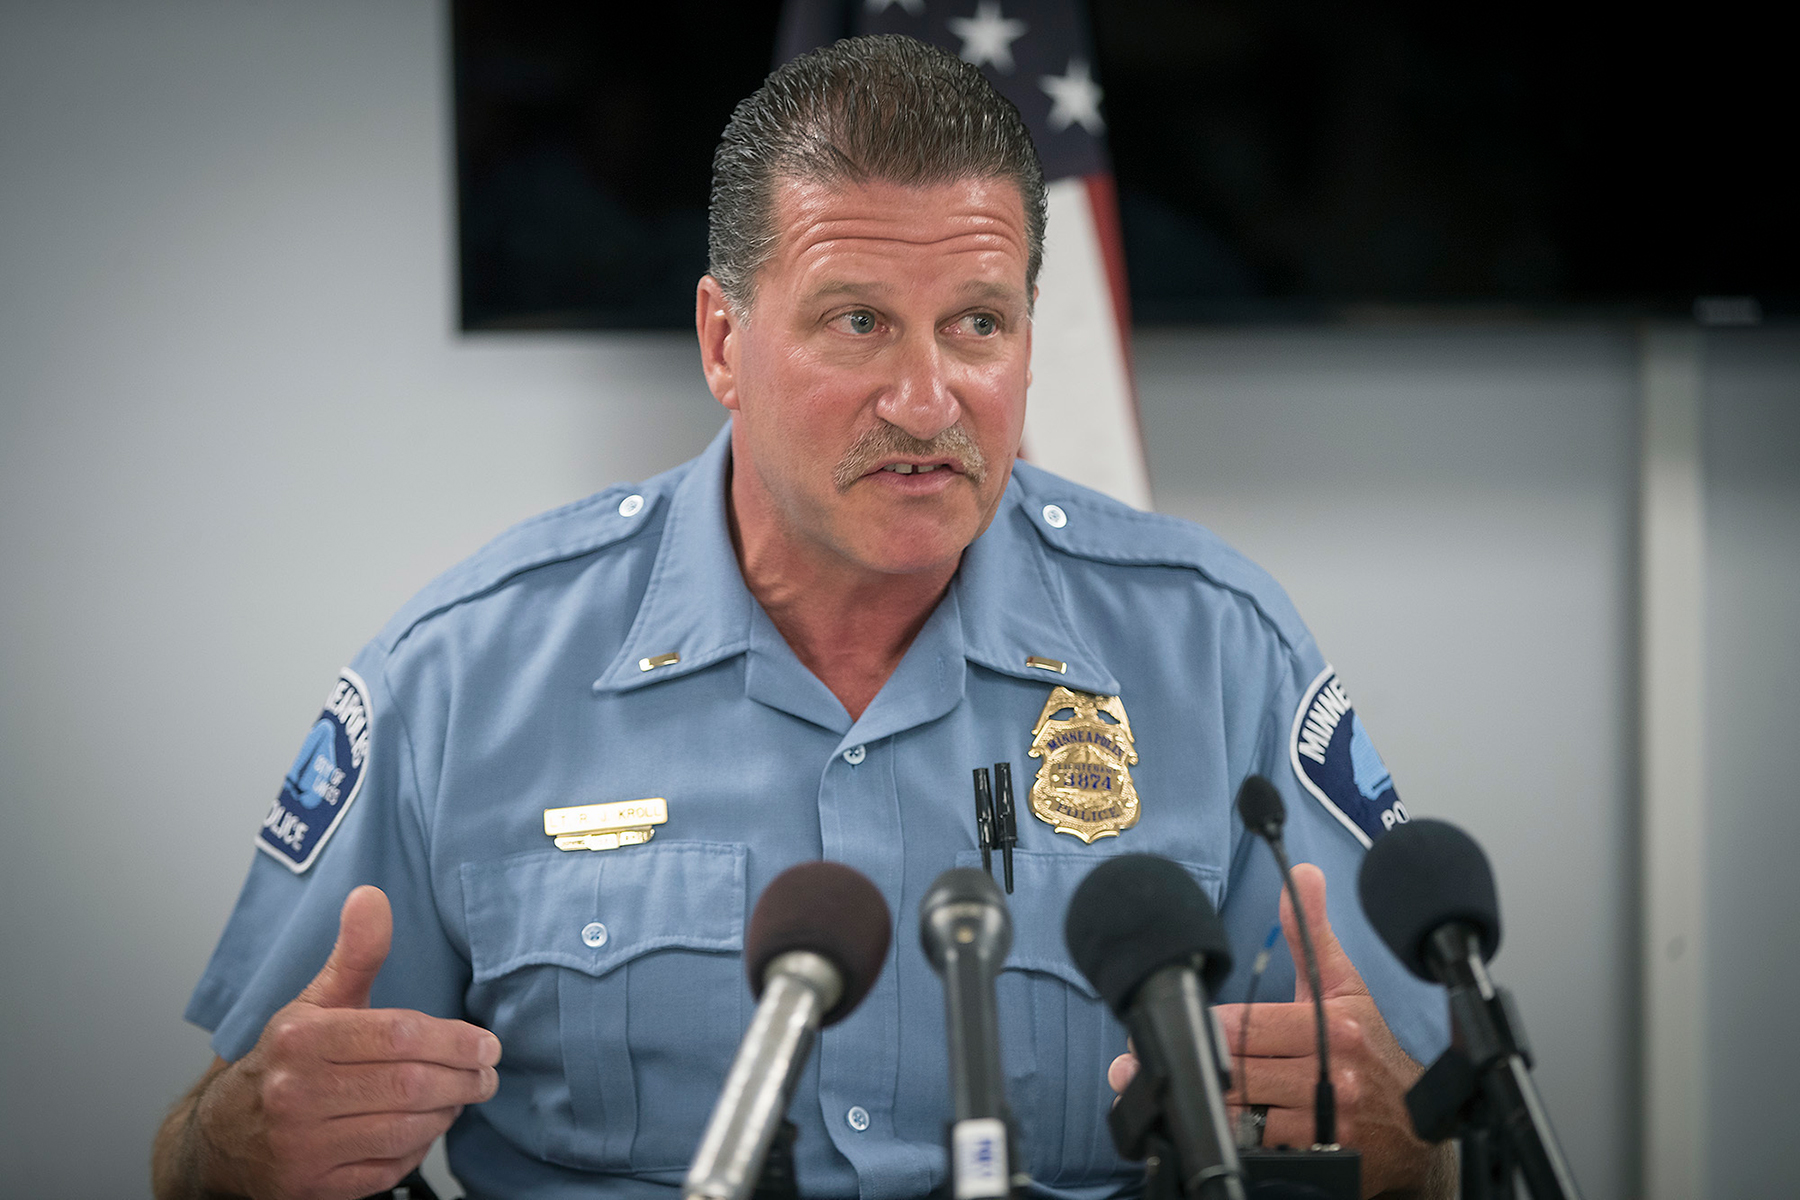 FILE - In this July 30, 2018 file photo, Minneapolis Police Union President Lt. Bob Kroll speaks during a news conference regarding the release of body camera footage in the police shooting death of Thurman Blevins, at the Minneapolis Police Federation headquarters in Minneapolis. Kroll has been steadfast over the years in defending officers' conduct. And in a letter to members in June 2020, he blasted state and city leaders for failing to support the Minneapolis Police Department following George Floyd's death. (Elizabeth Flores/Star Tribune via AP)